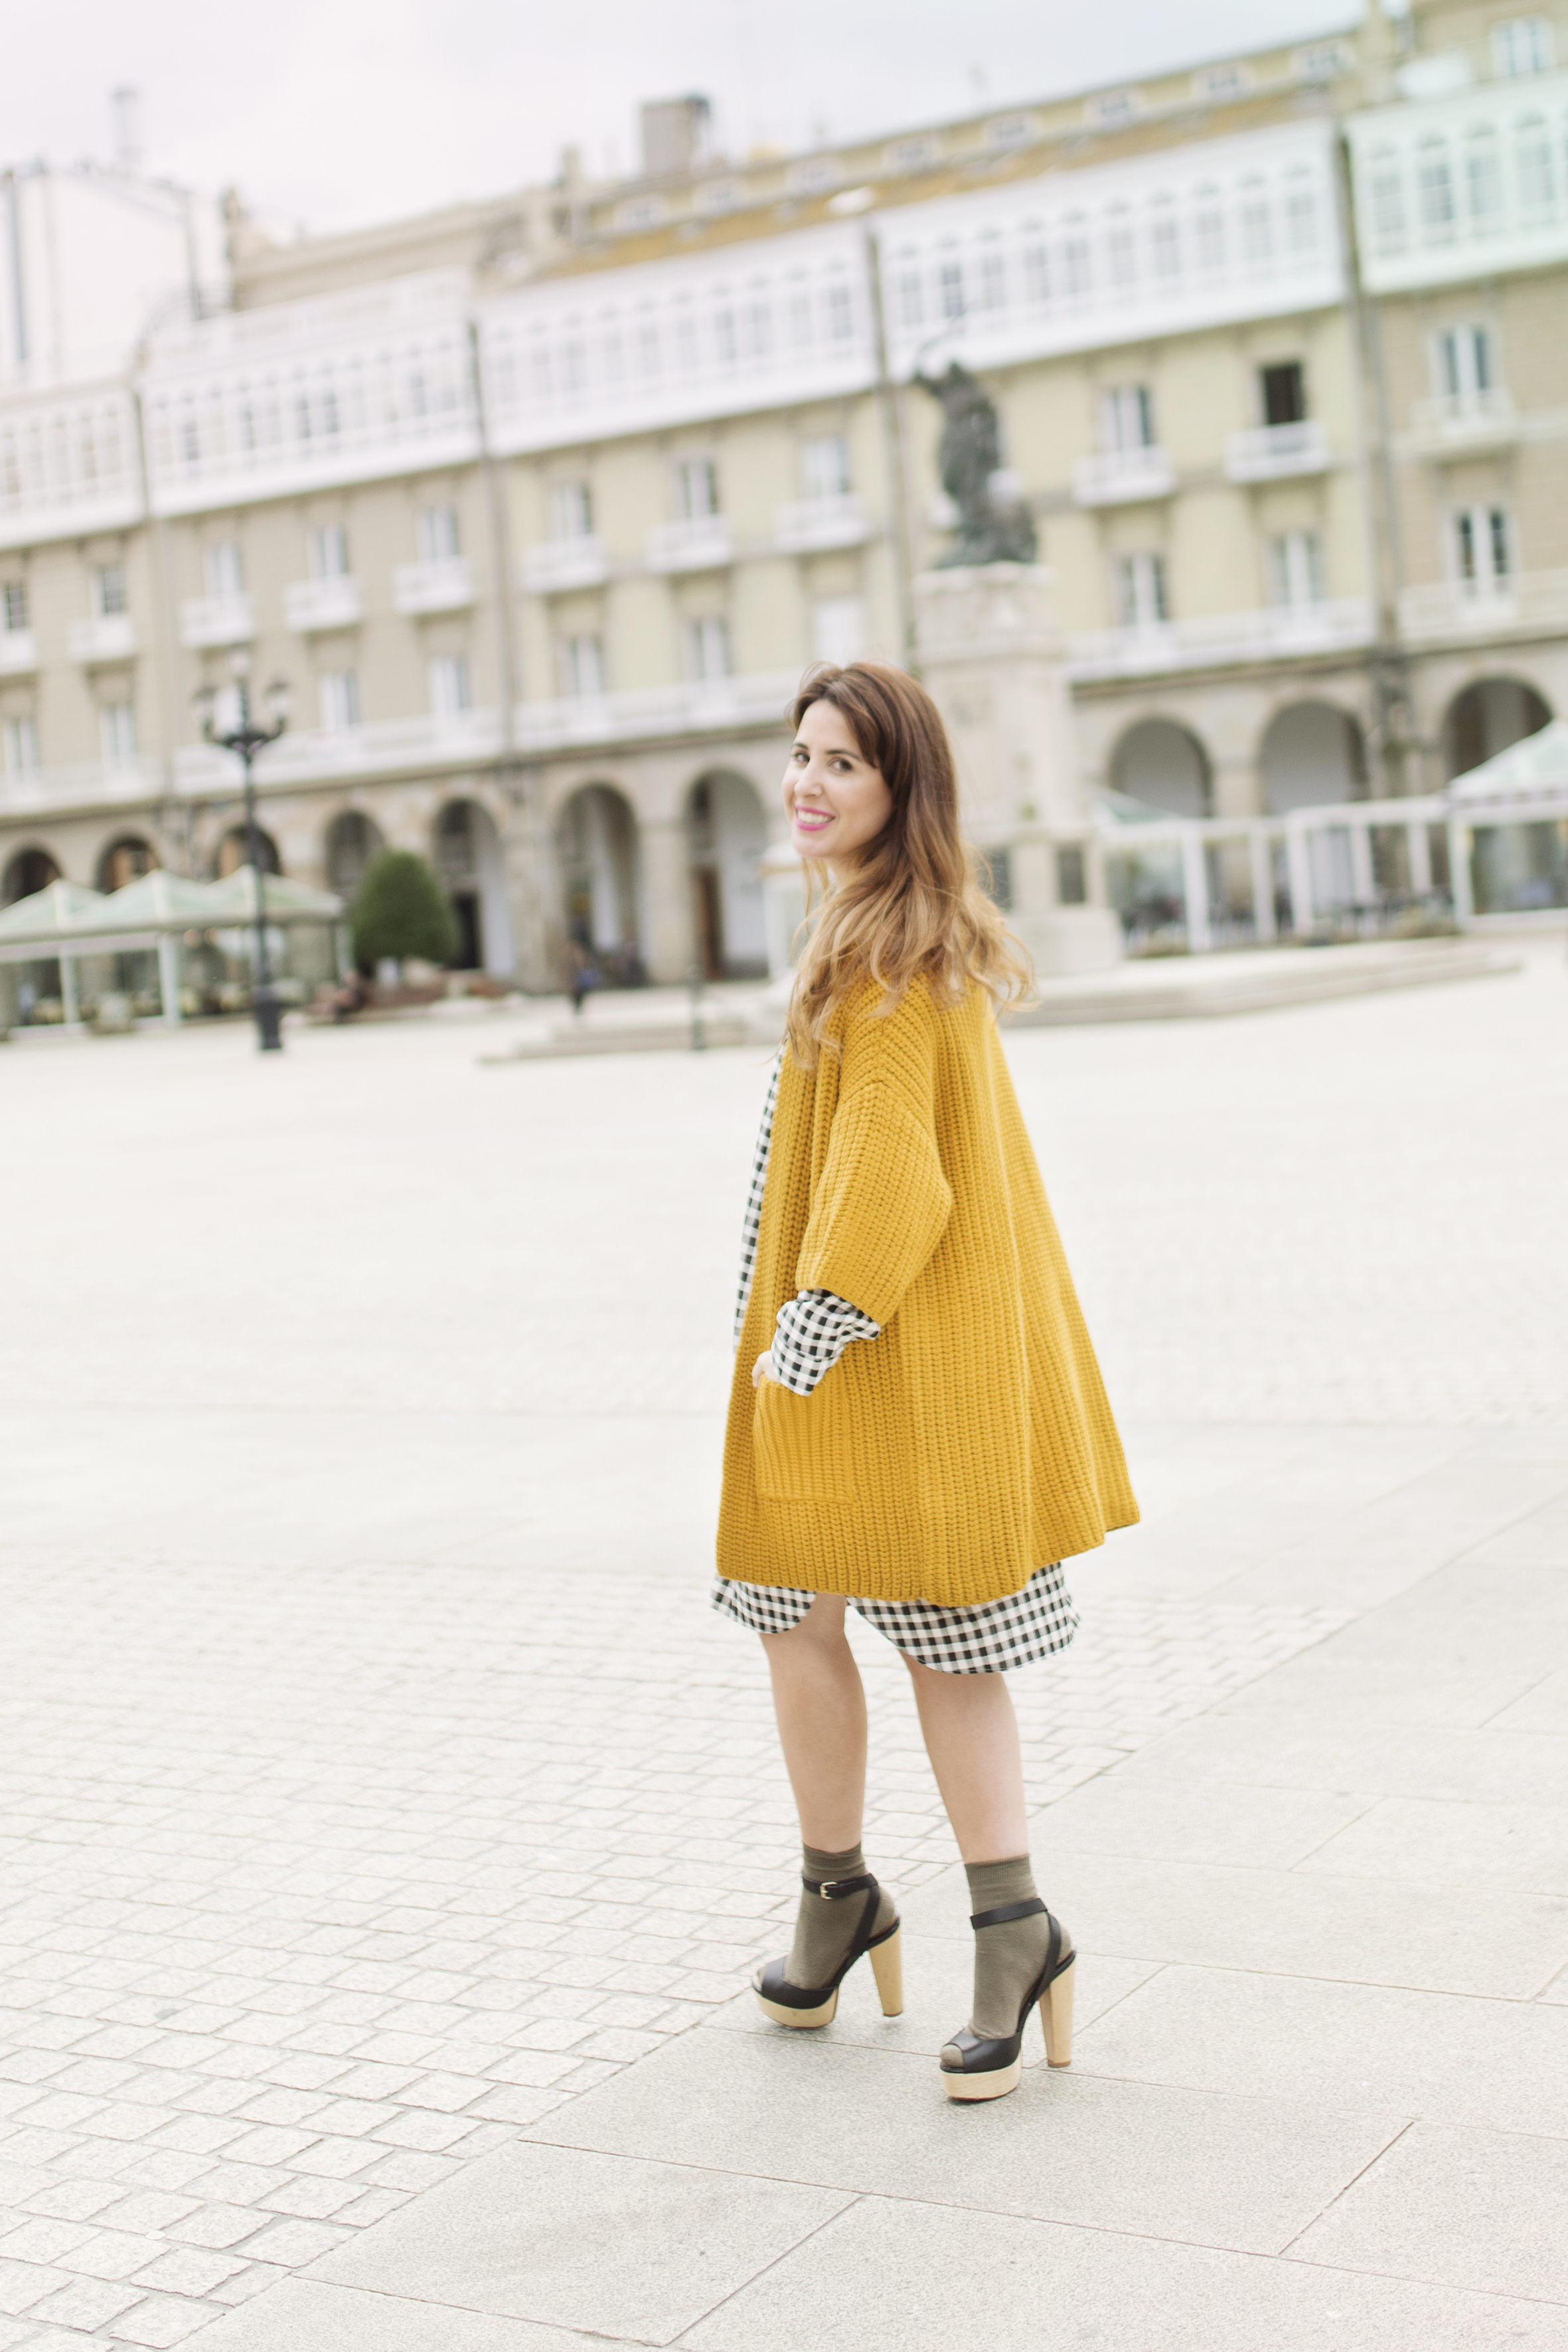 mustard cardigan-dress shirt-fashion-coruña- street-descalzaporelparque- cèline bag-calle-moda